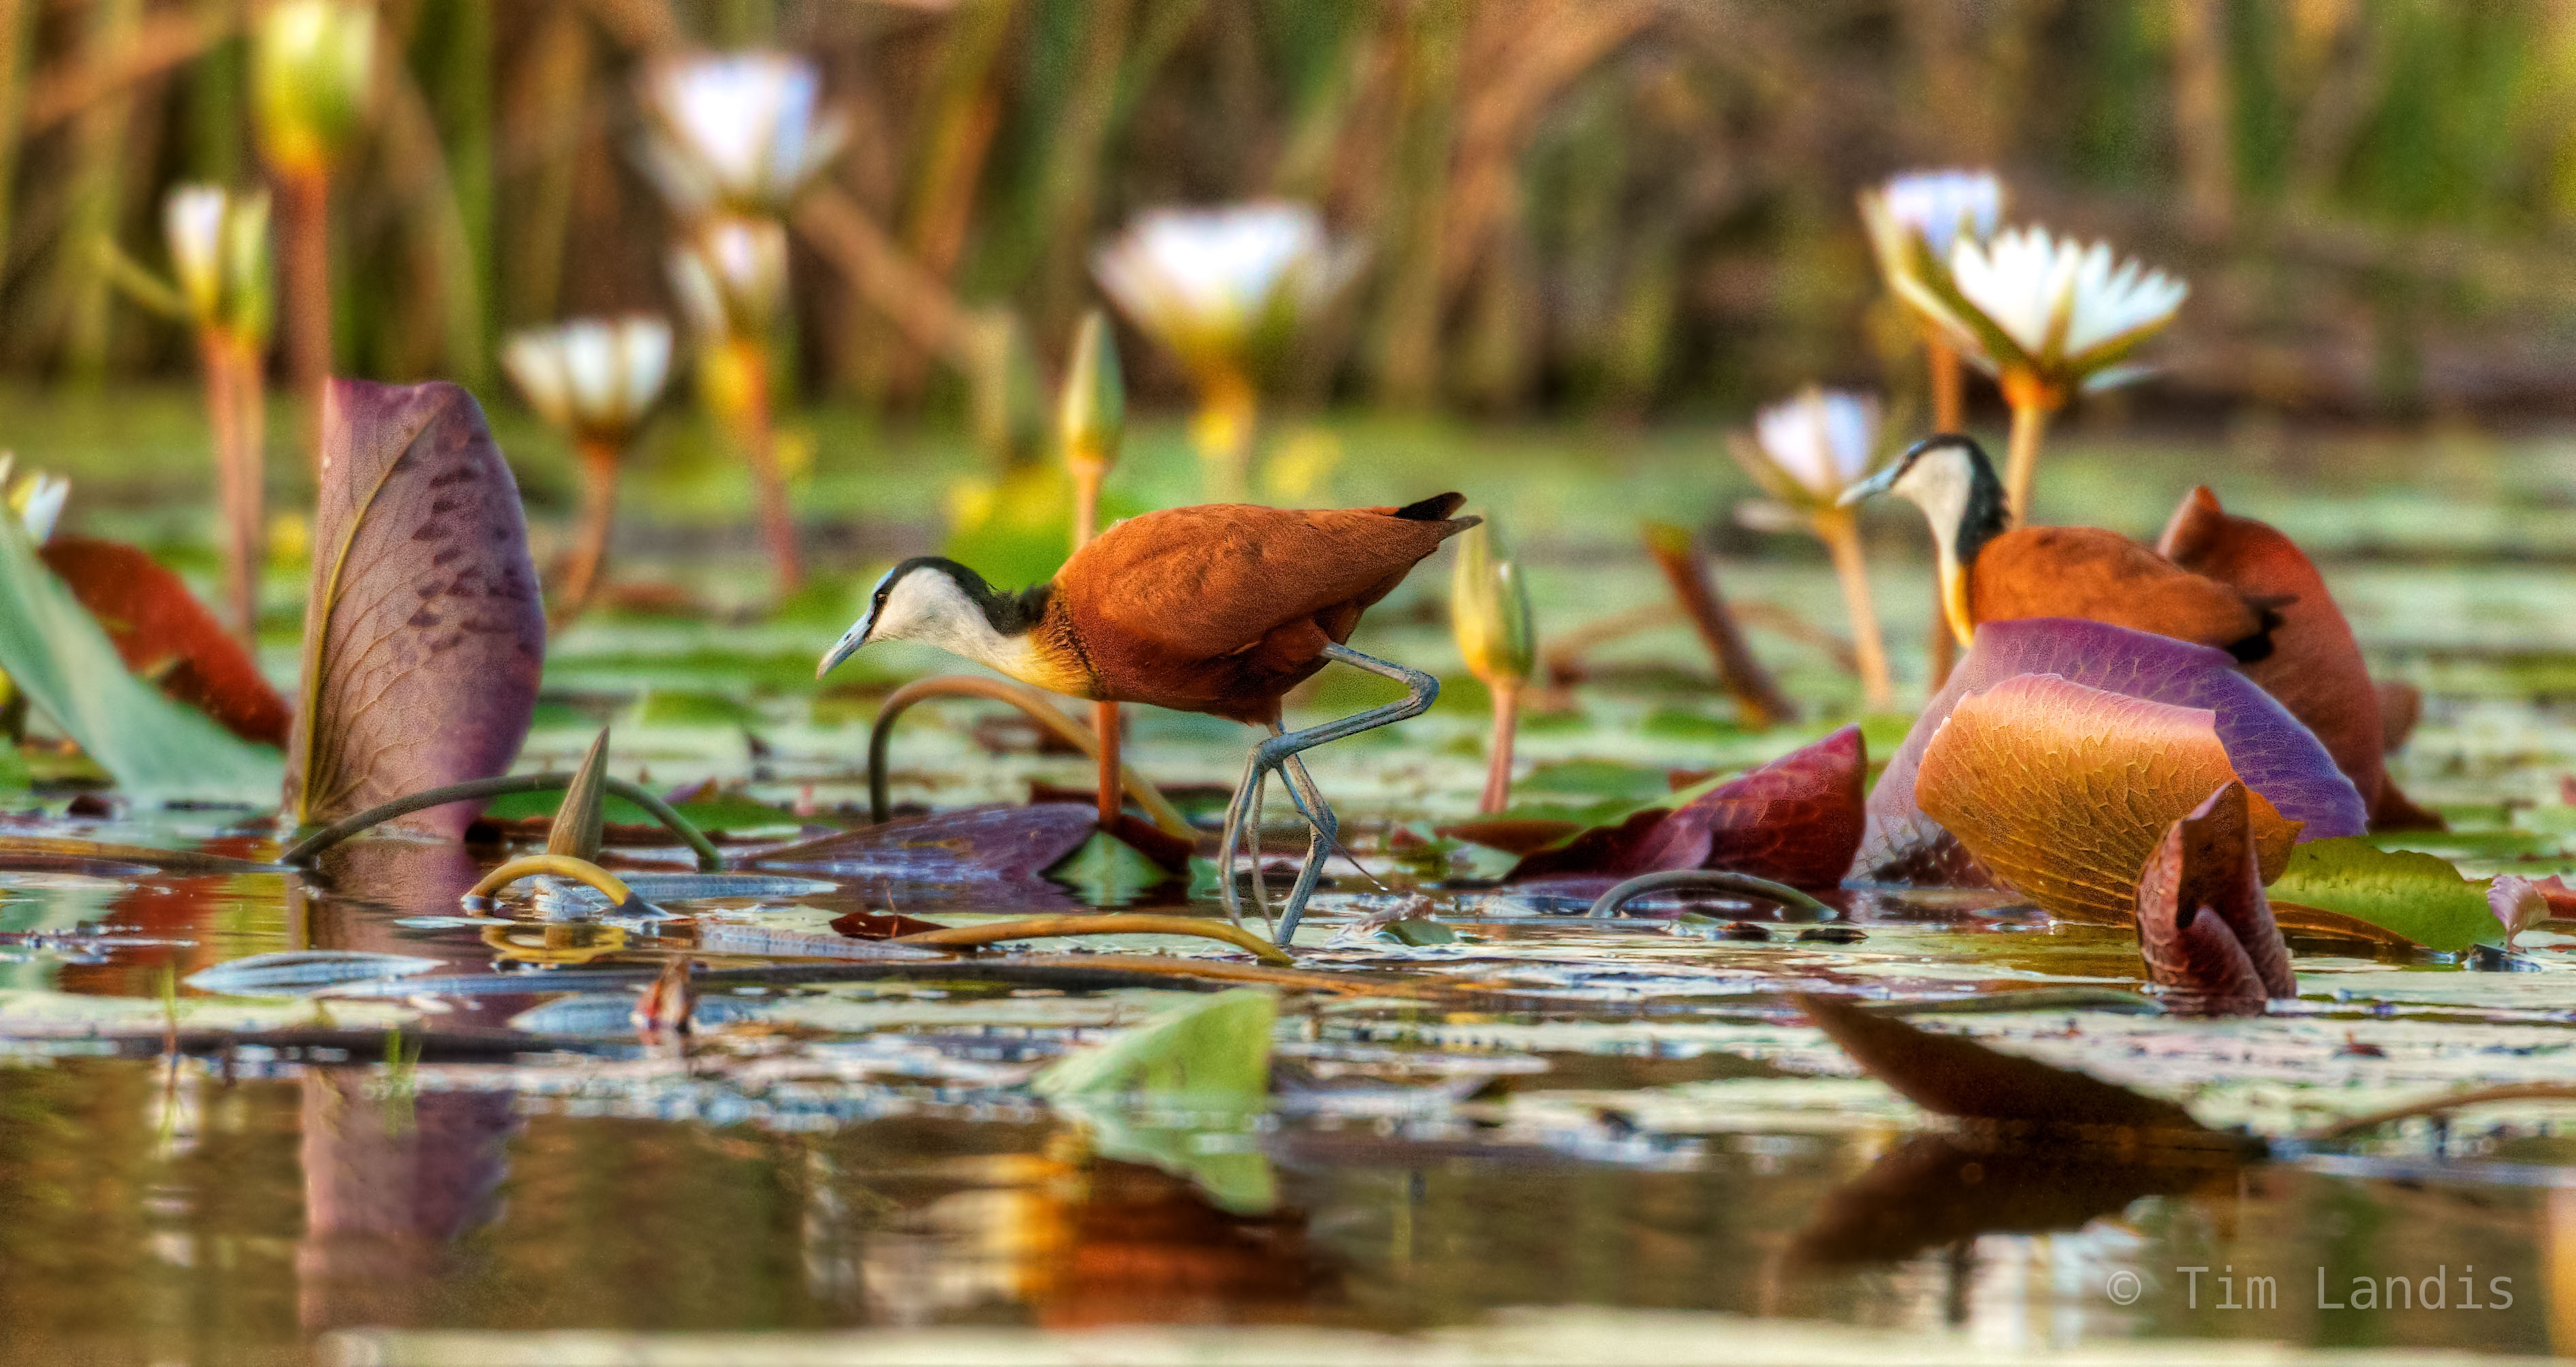 African Jaciana bird, Jacana, Jesus bird, WaterWalker, the bird with really big feet, walk on water, walk on waterlillies, photo